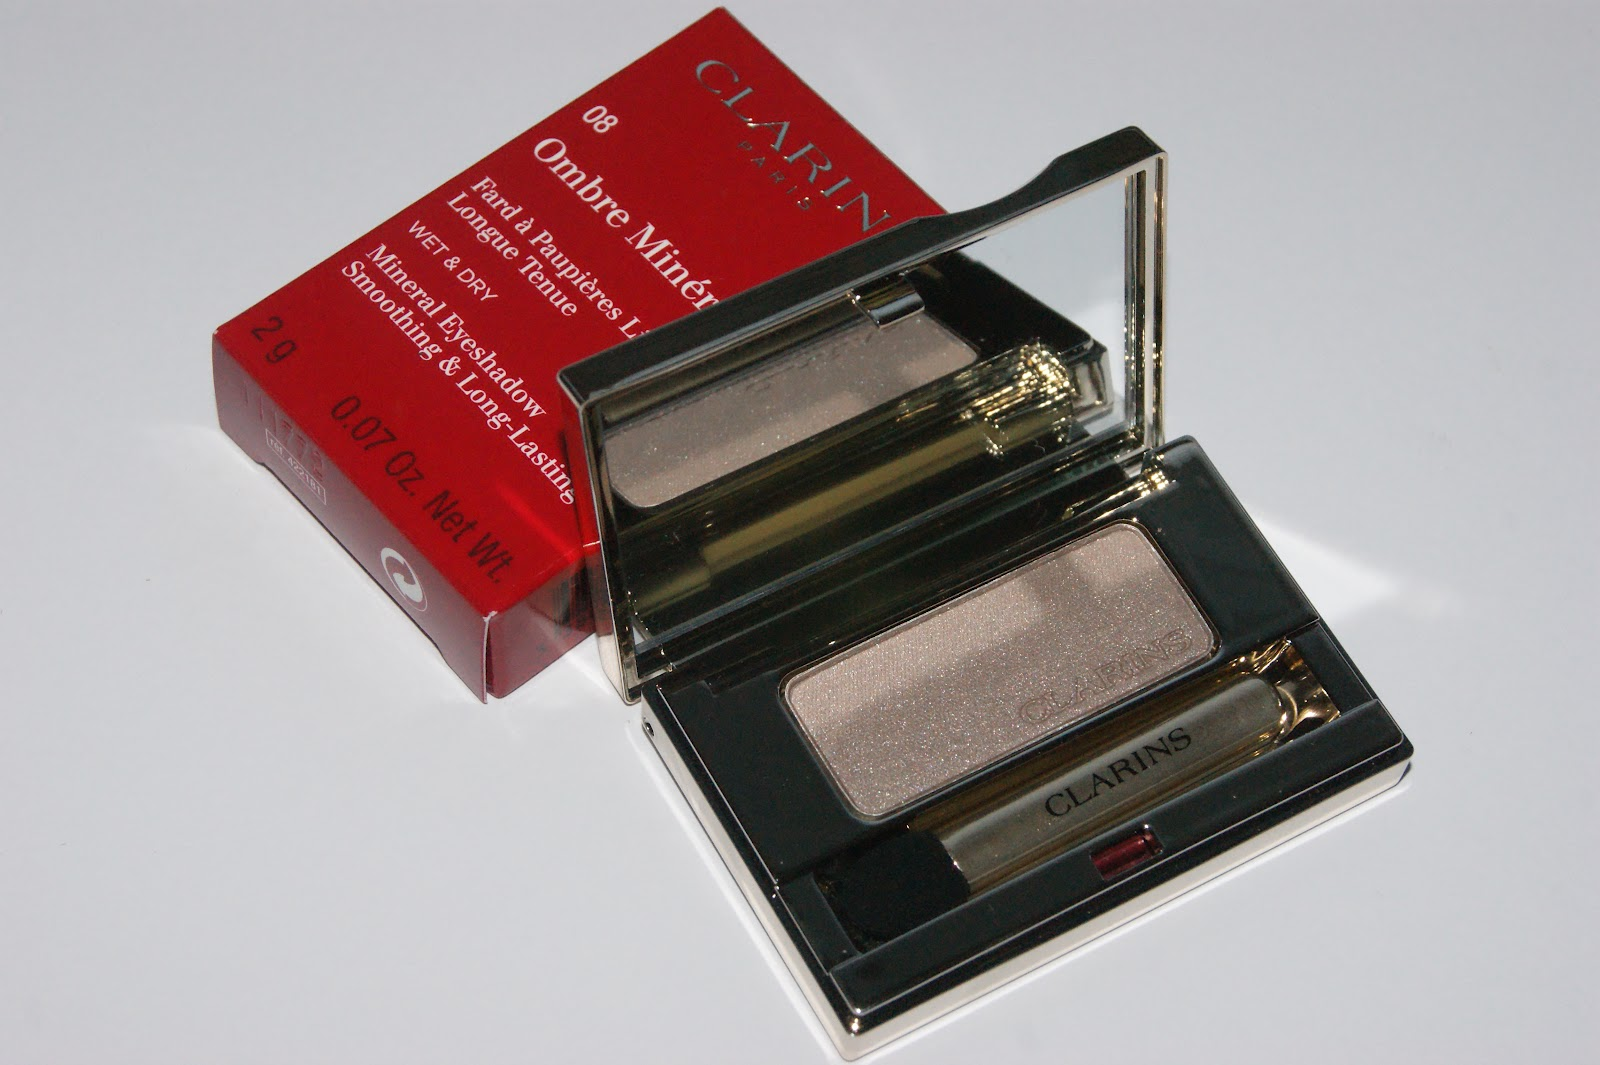 23d7ae691f0 Today I have another Autumn offering from Clarins in the form of their new